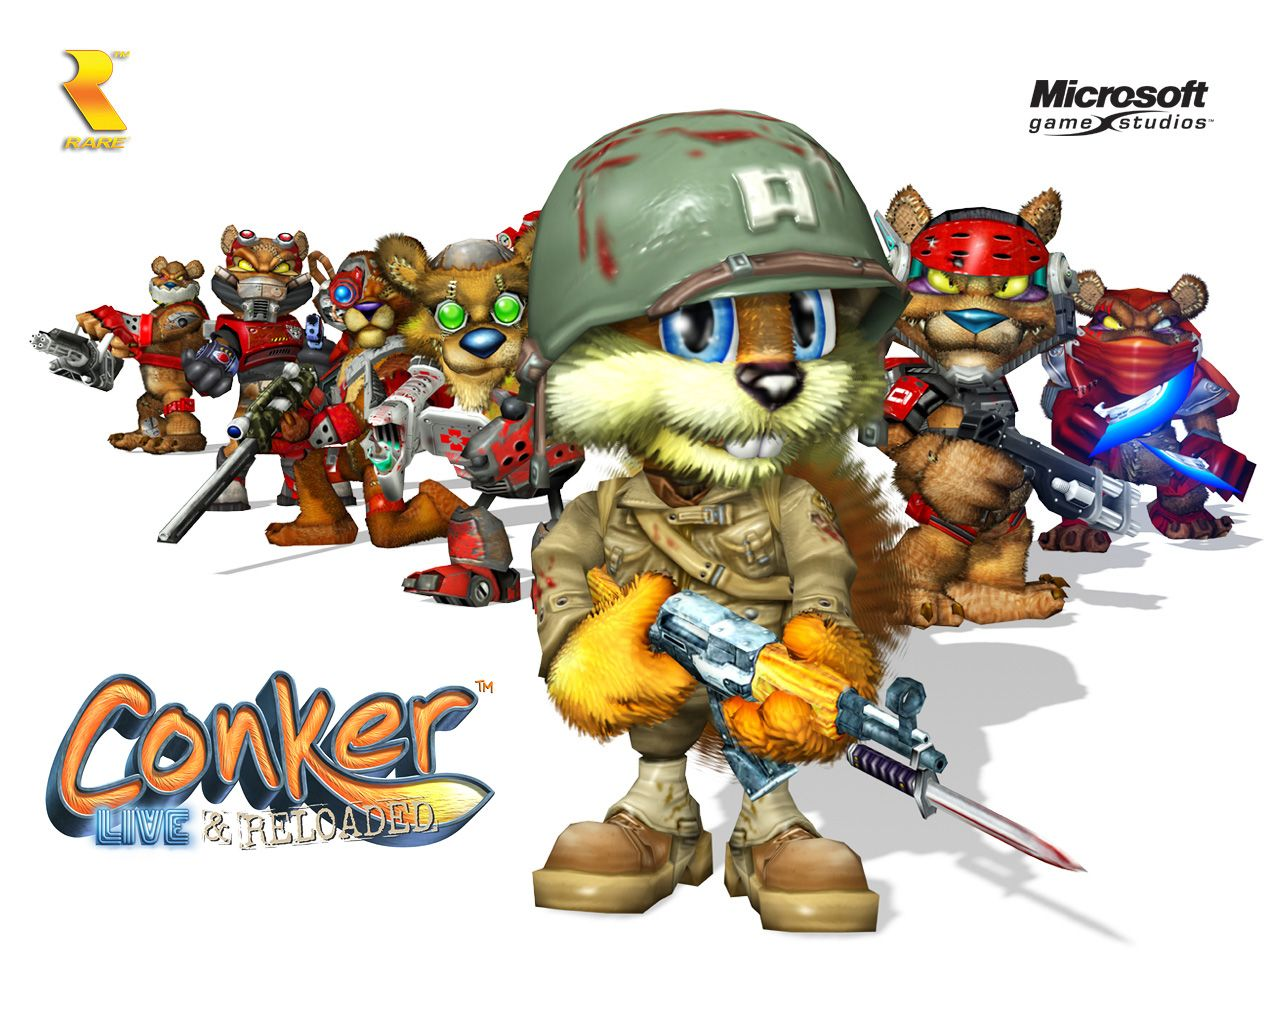 Conker Live Reloaded Wallpaper Conkers Conker Live And